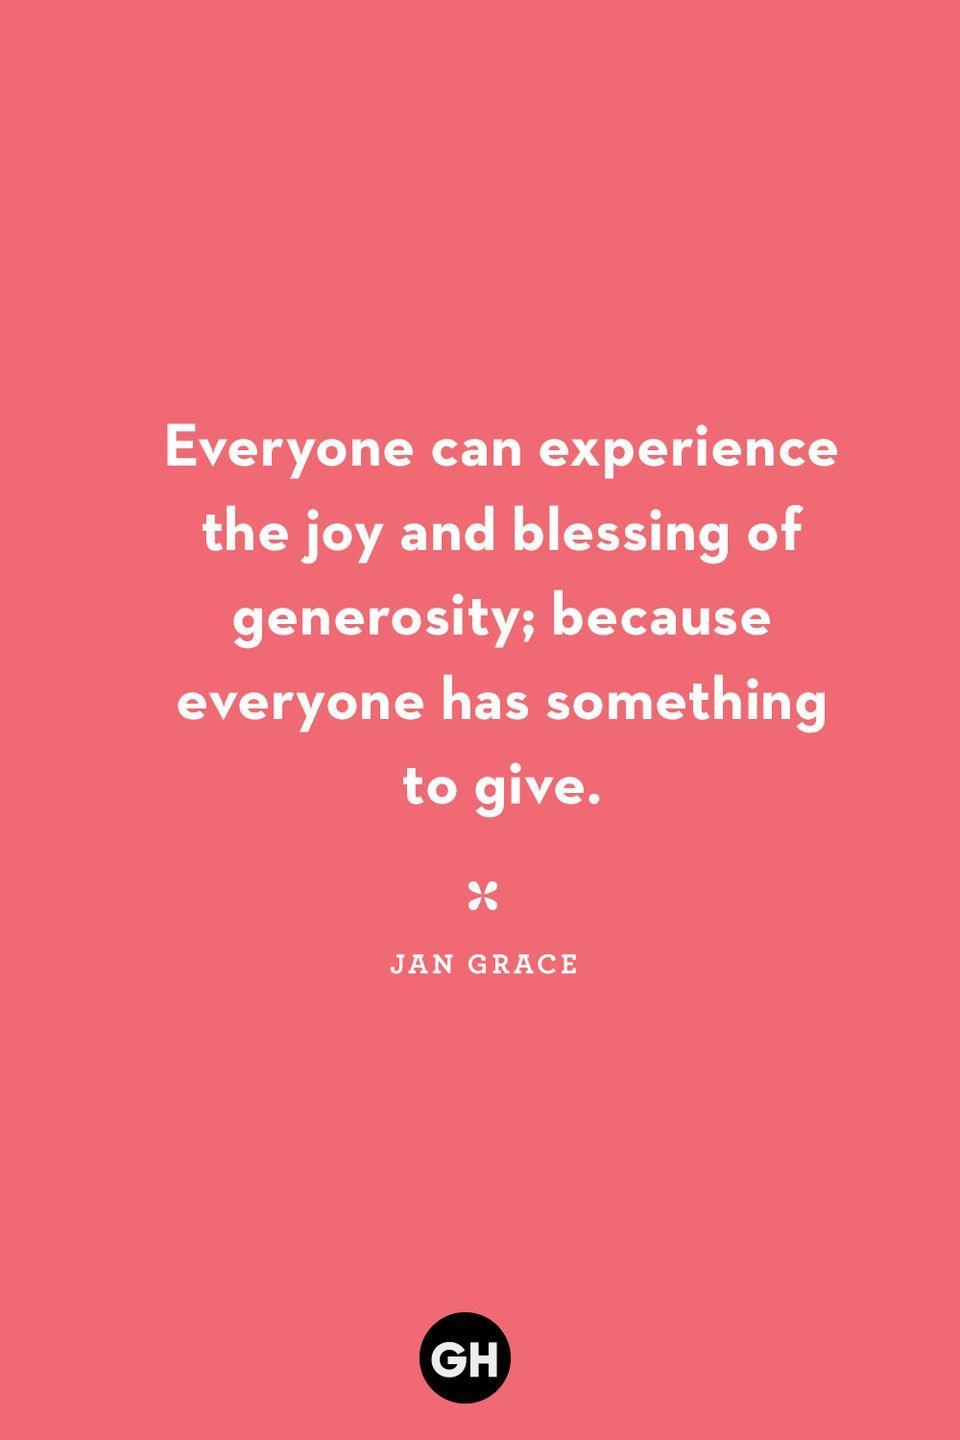 <p>Everyone can experience the joy and blessing of generosity; because everyone has something to give.</p>